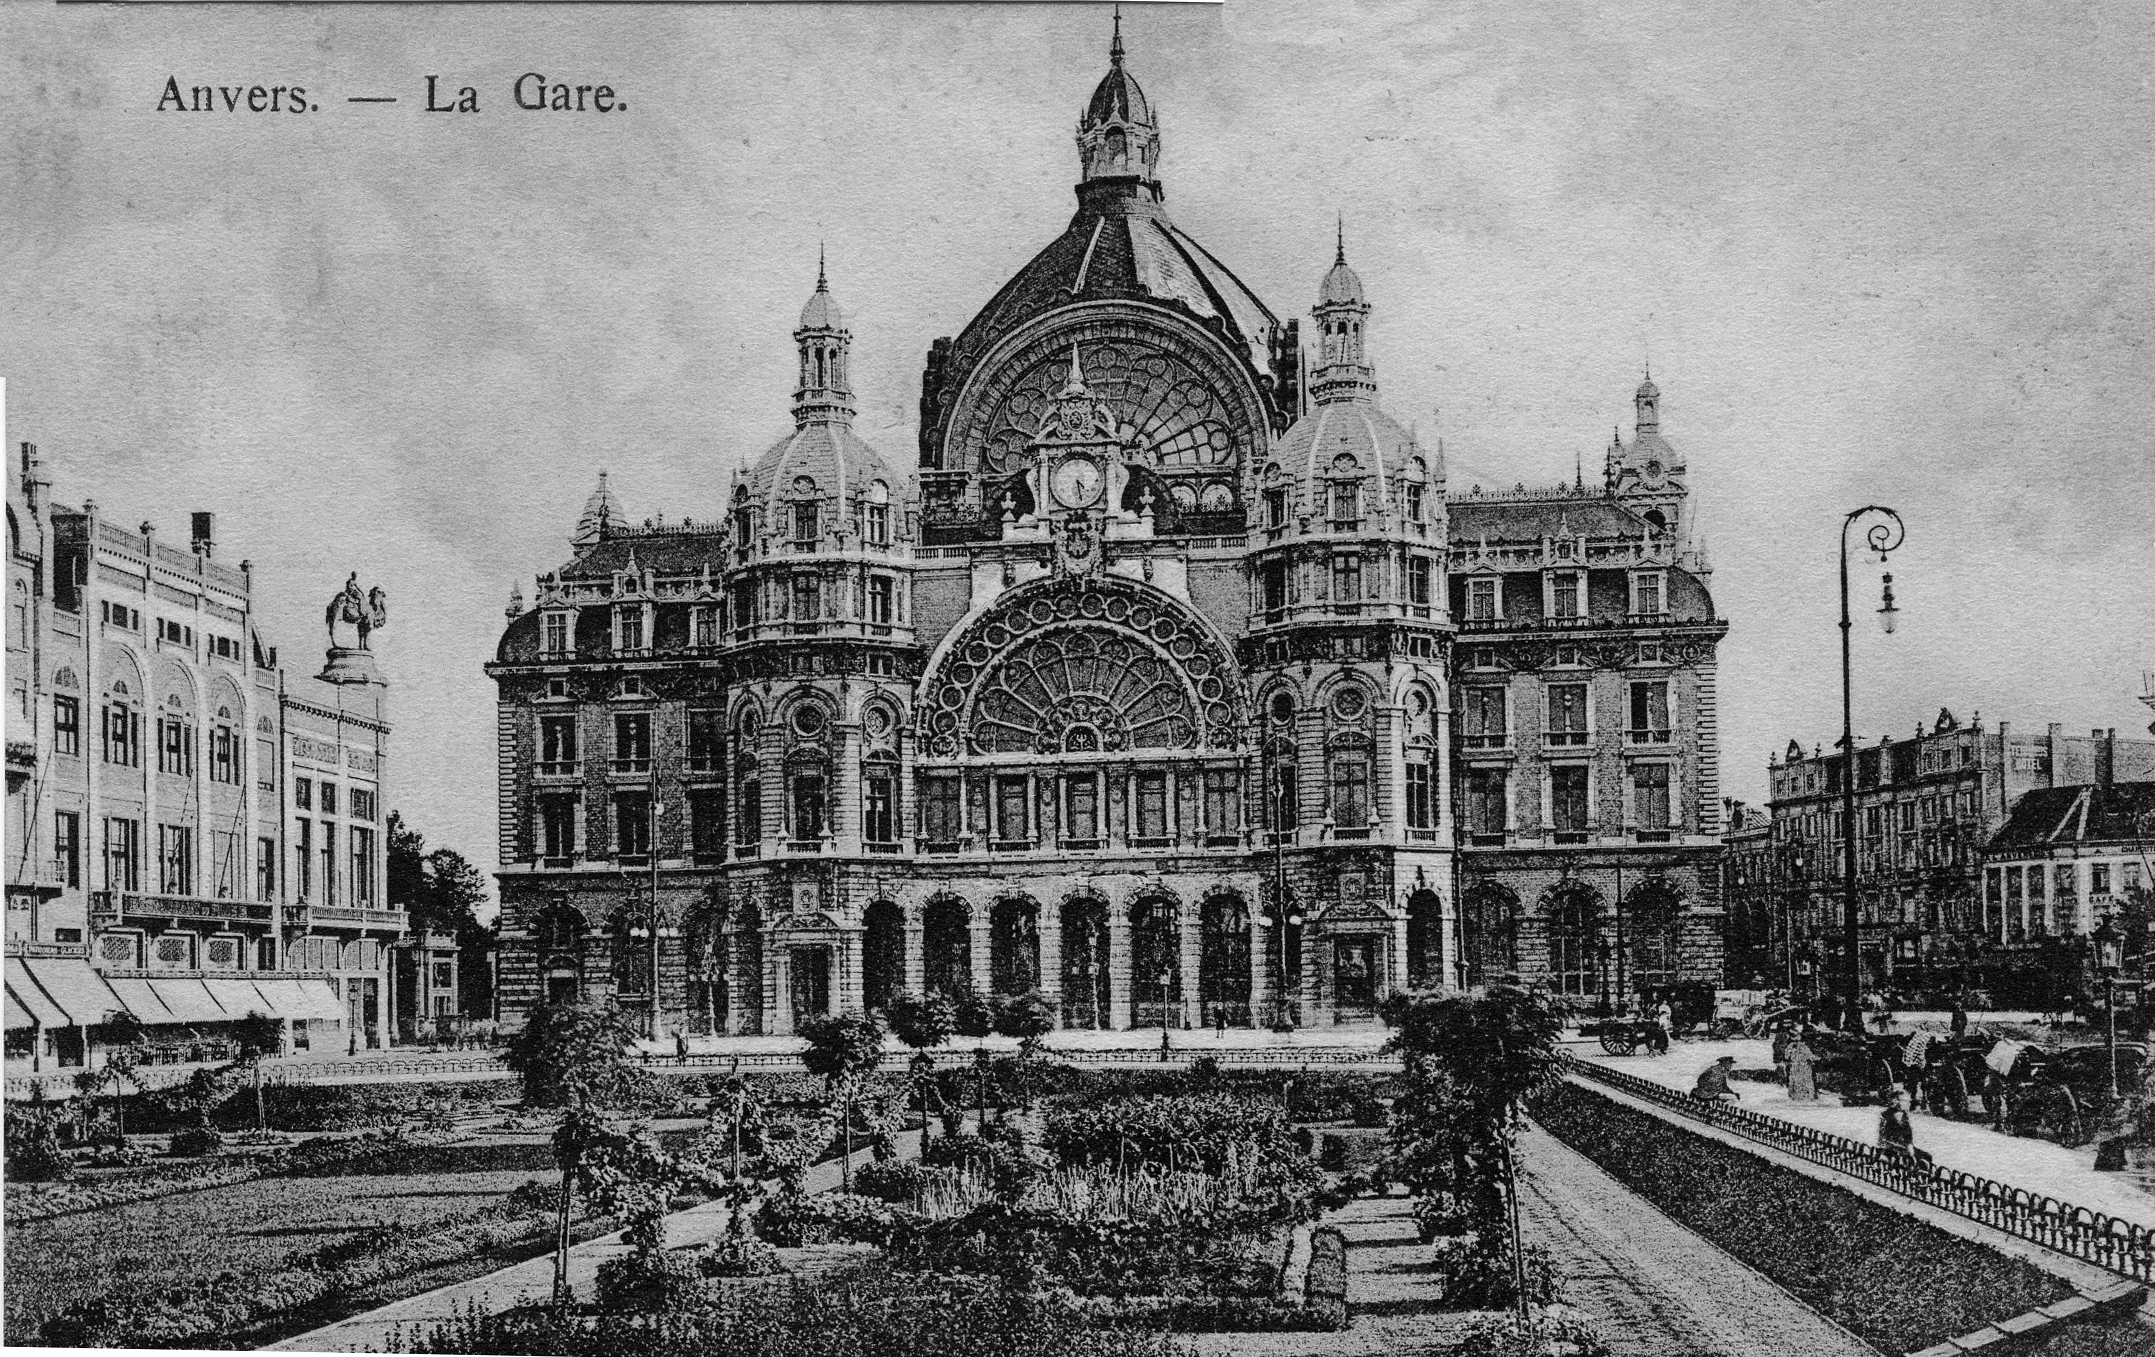 https://upload.wikimedia.org/wikipedia/commons/6/6b/Antwerpen_Centraal_station_1911.jpg